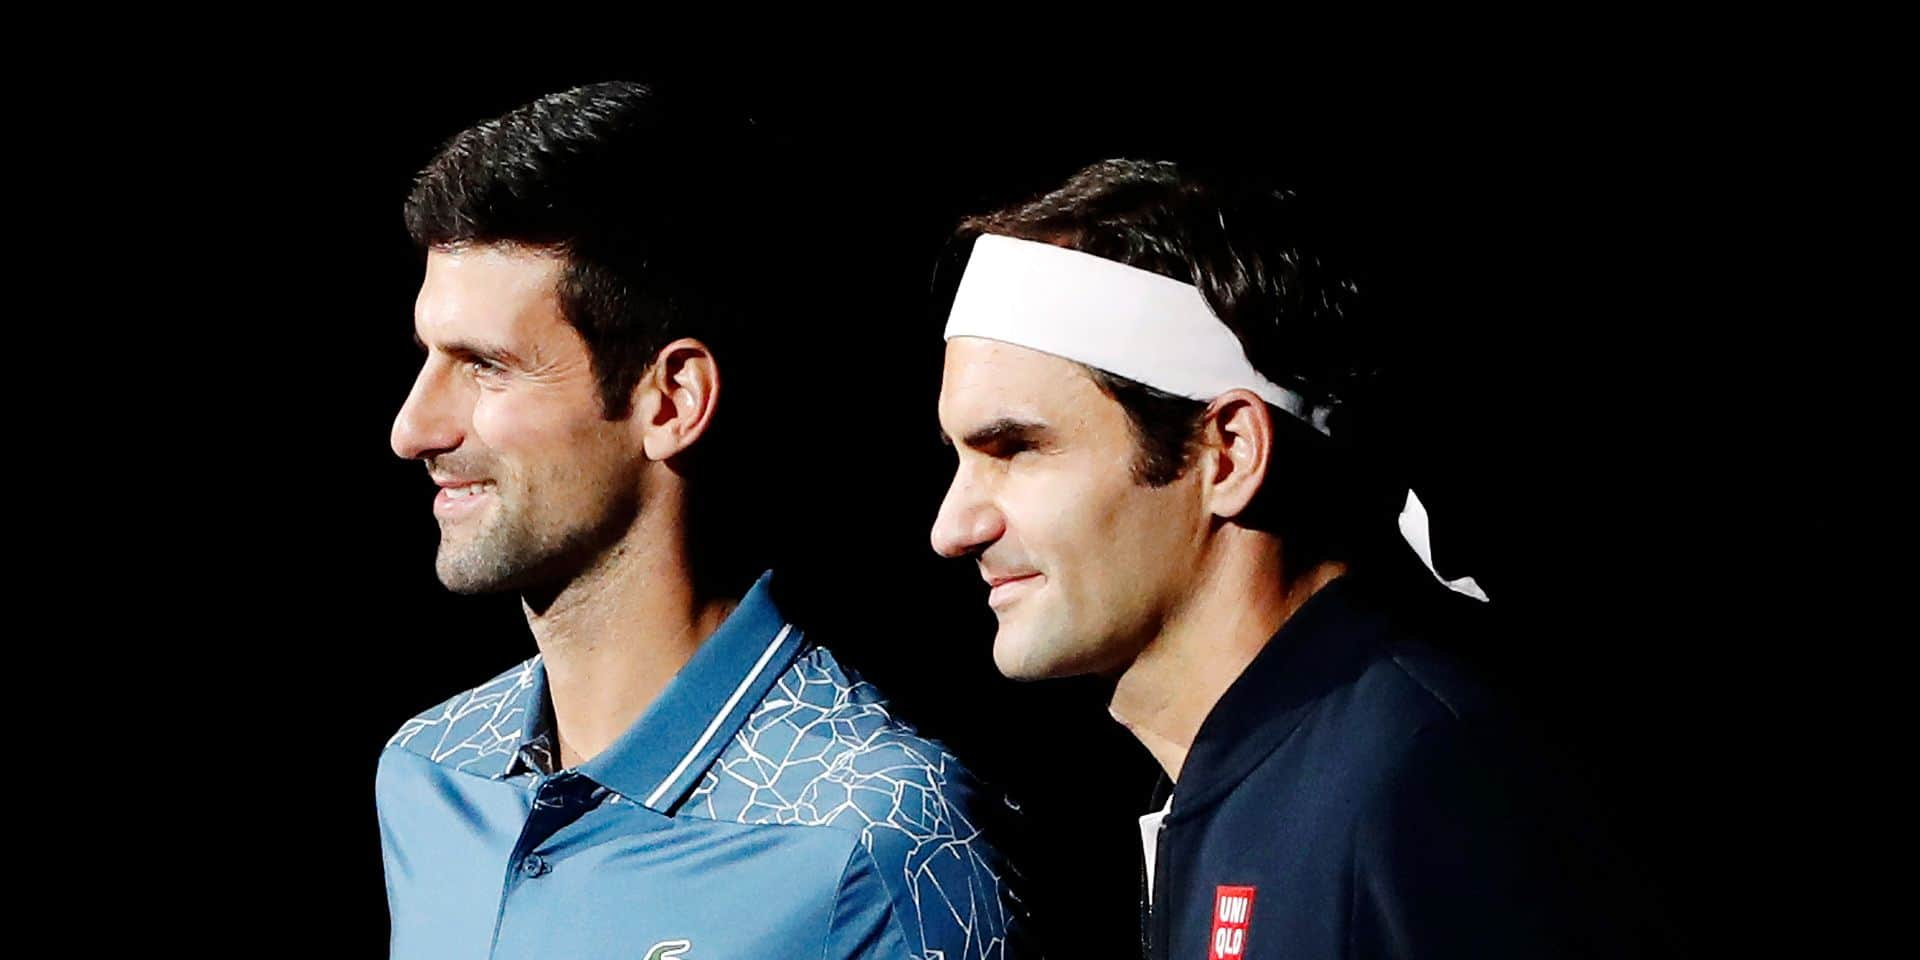 Roger Federer of Switzerland, left, and Novak Djokovic of Serbia pose prior to their semifinal match of the Paris Masters tennis tournament at the Bercy Arena in Paris, France, Saturday, Nov. 3, 2018. (AP Photo/Thibault Camus)